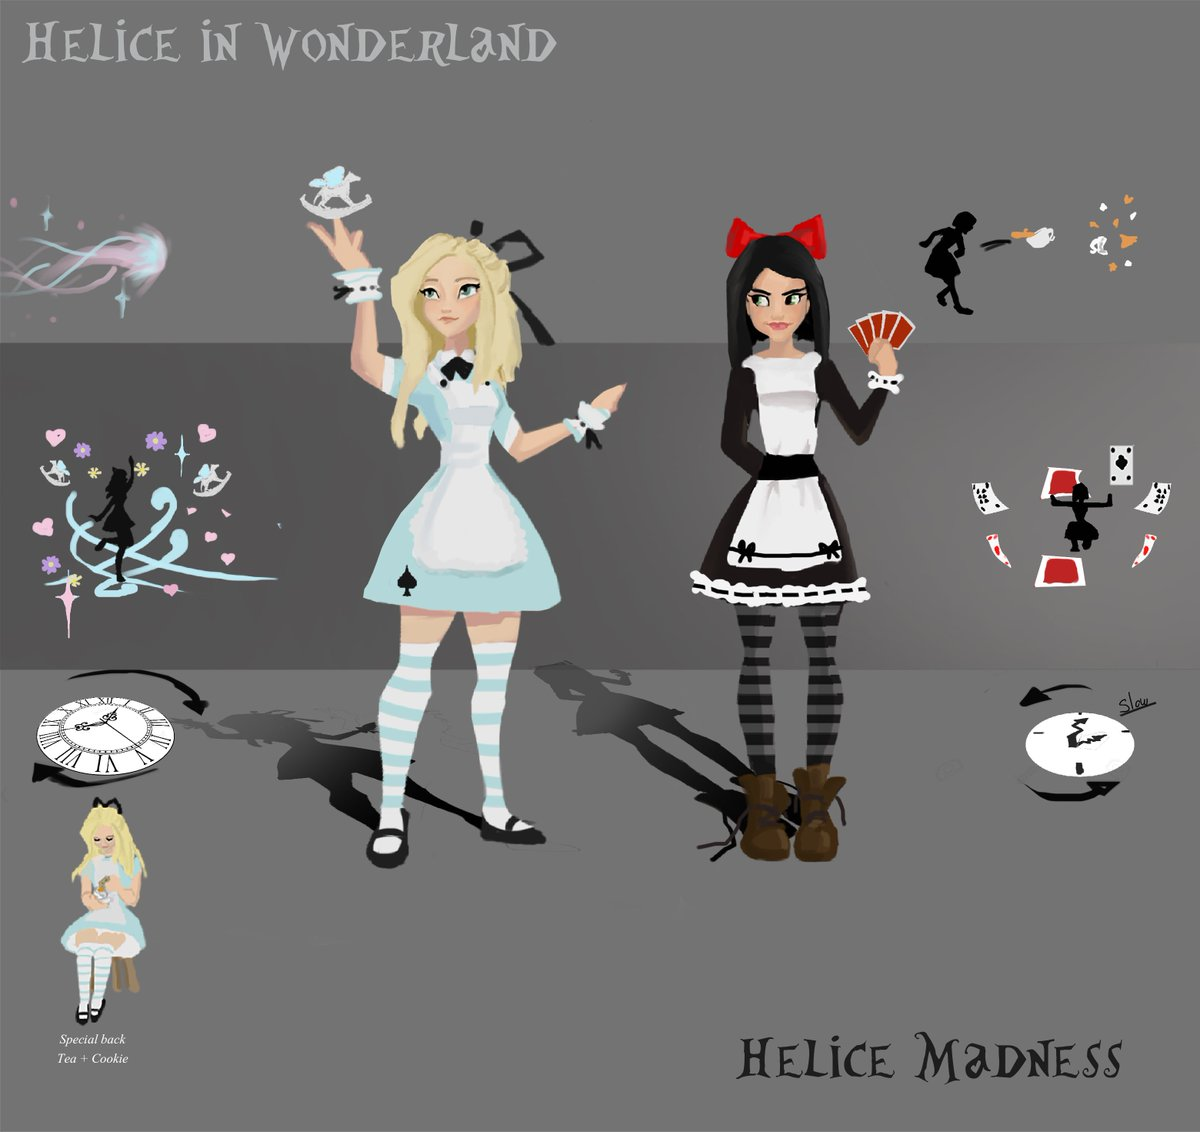 "Fiona Aubriot On Twitter: ""Helice In Wonderland Skin Idea For Hel -Smite @BethsyFr"